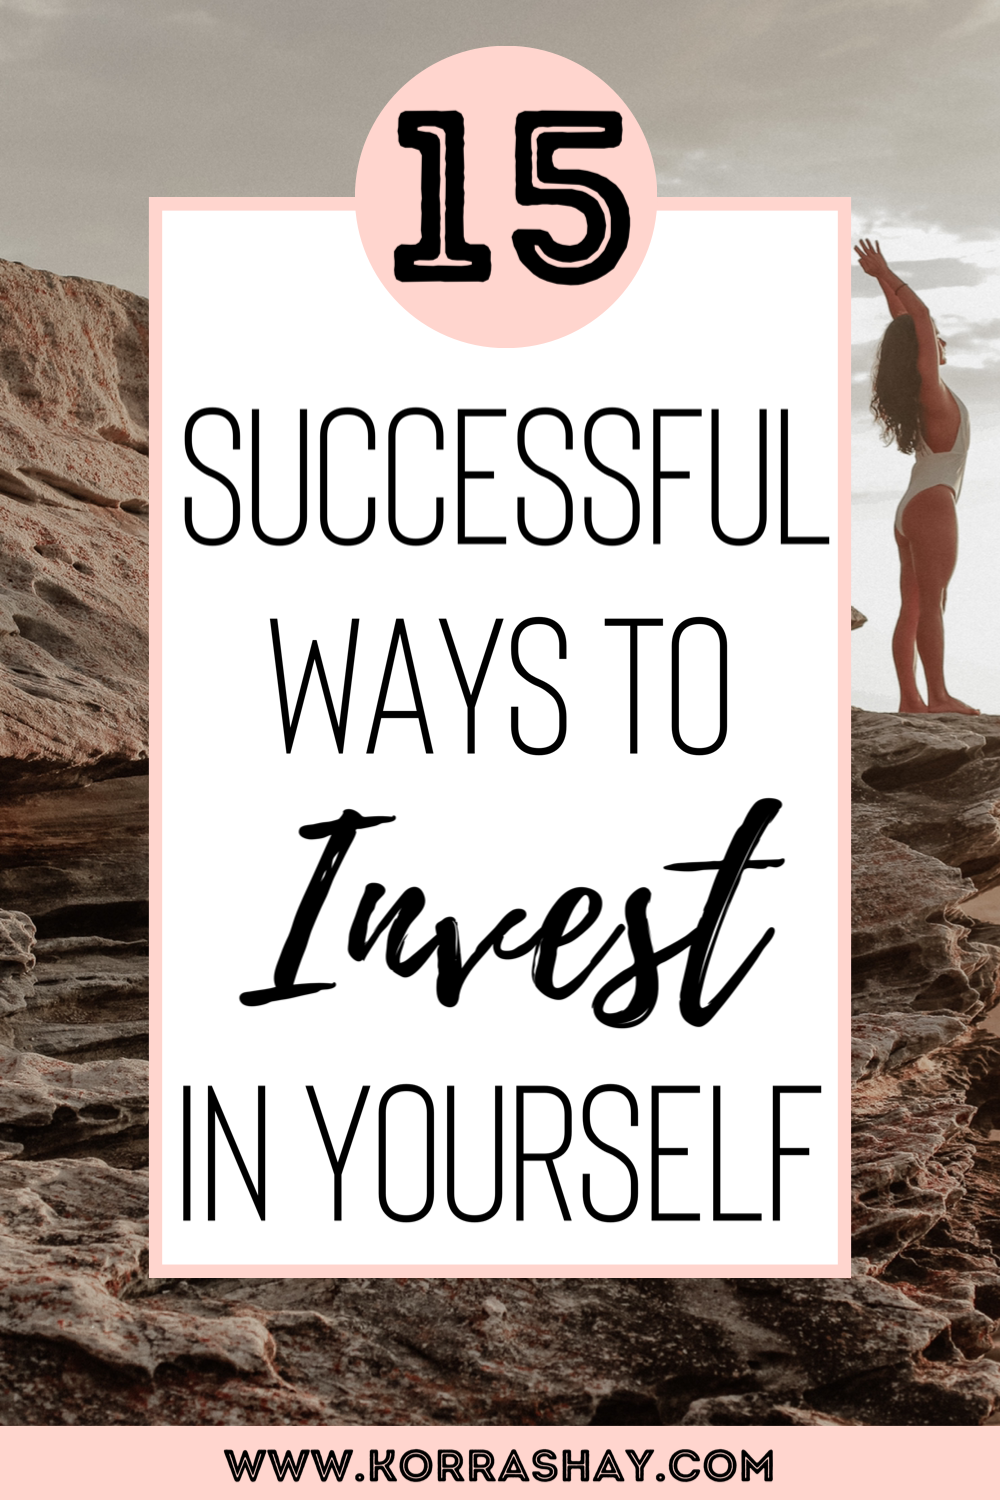 15 Successful Ways To Invest In Yourself For Your Best Life!